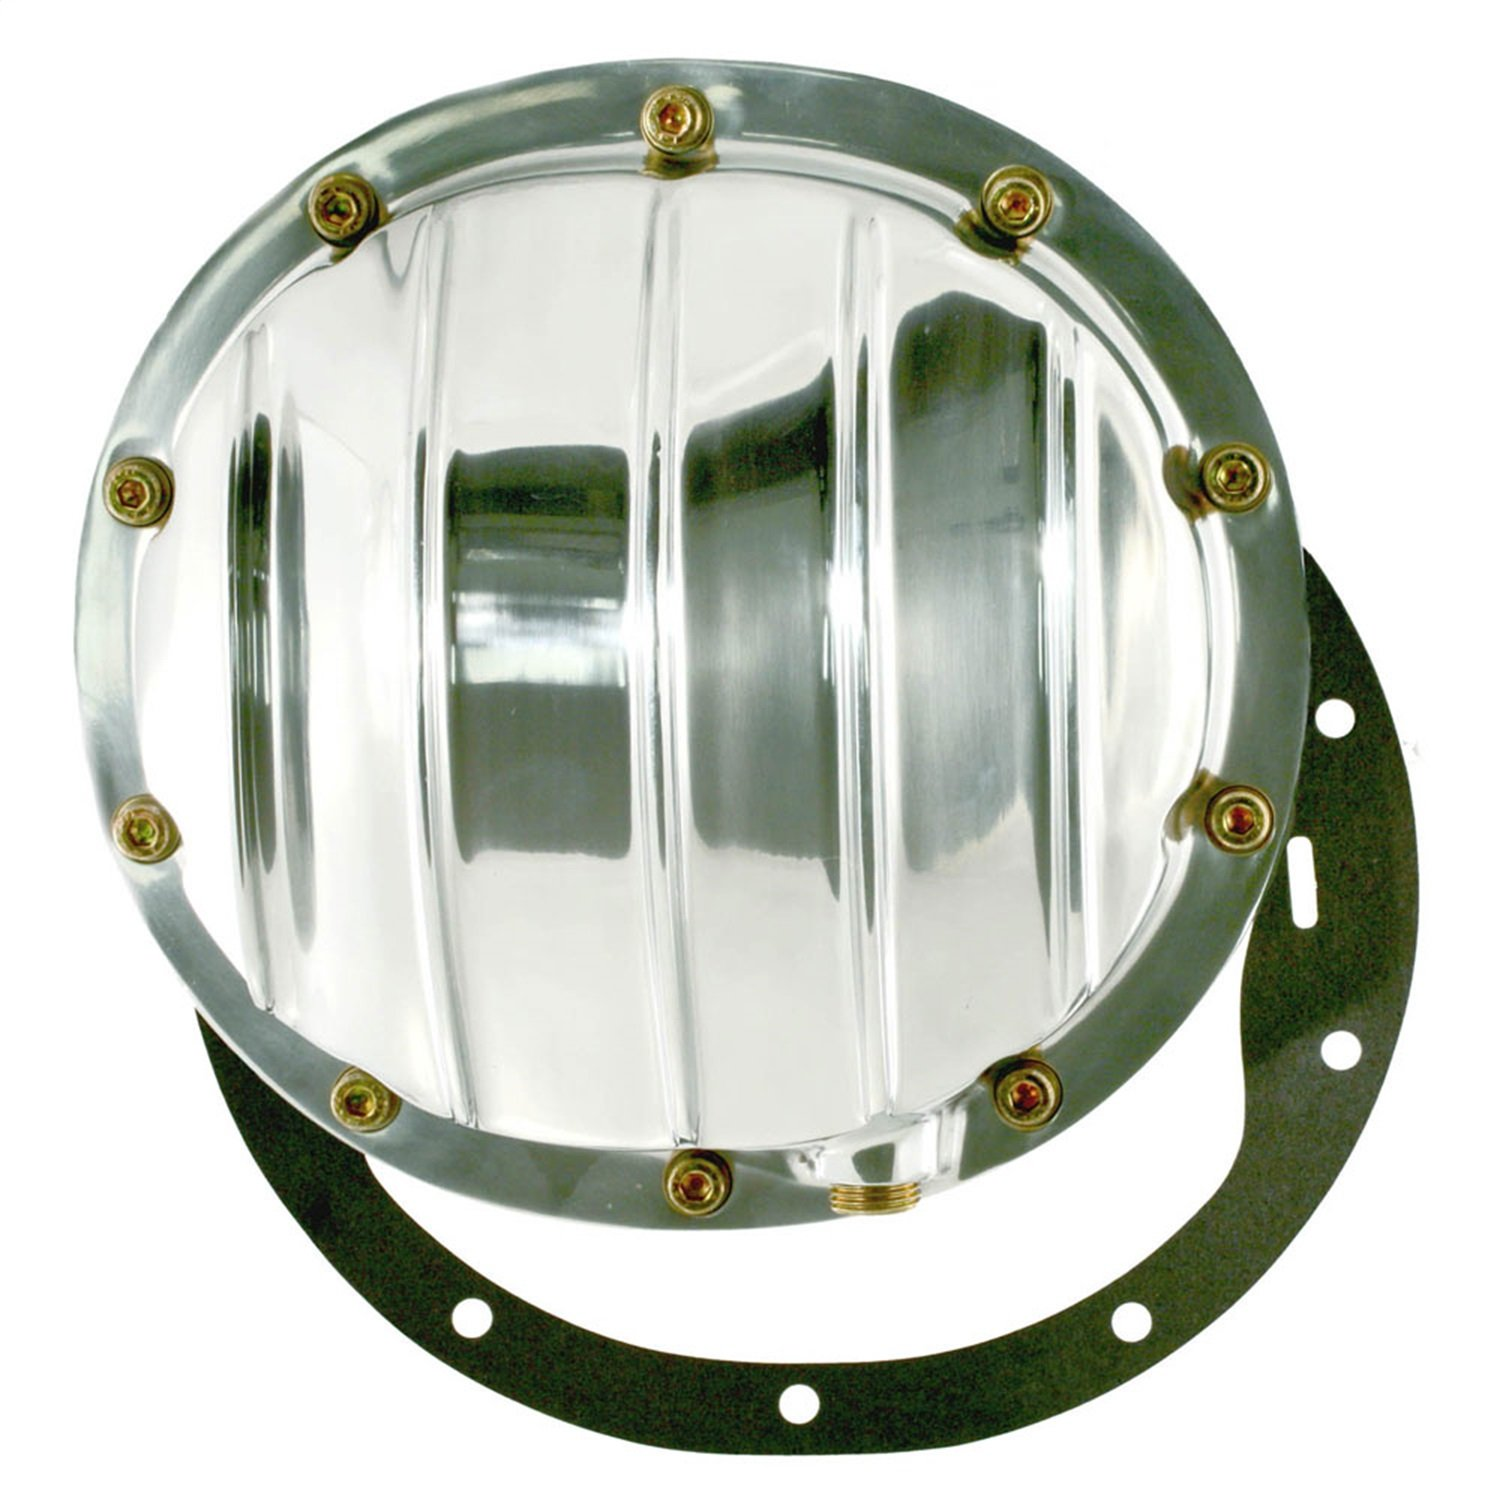 Spectre Performance 60879 10-Bolt Aluminum Differential Cover for GM